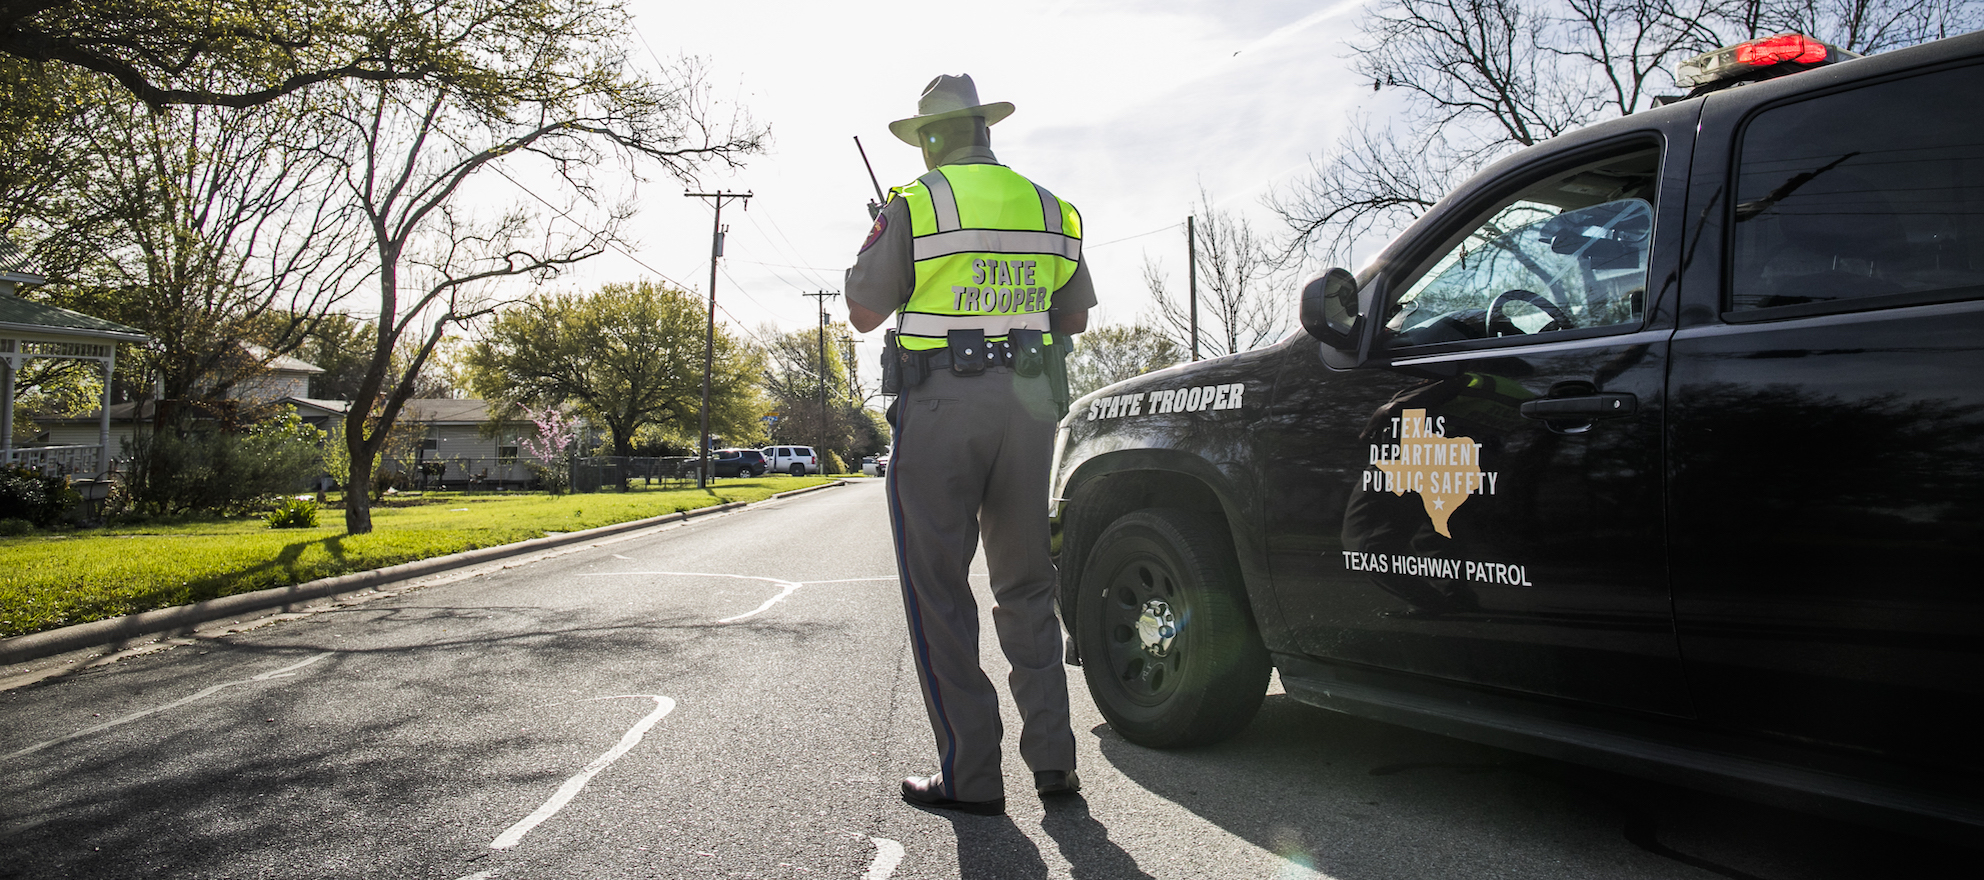 Bombing suspect dead, Austin real estate community remains vigilant